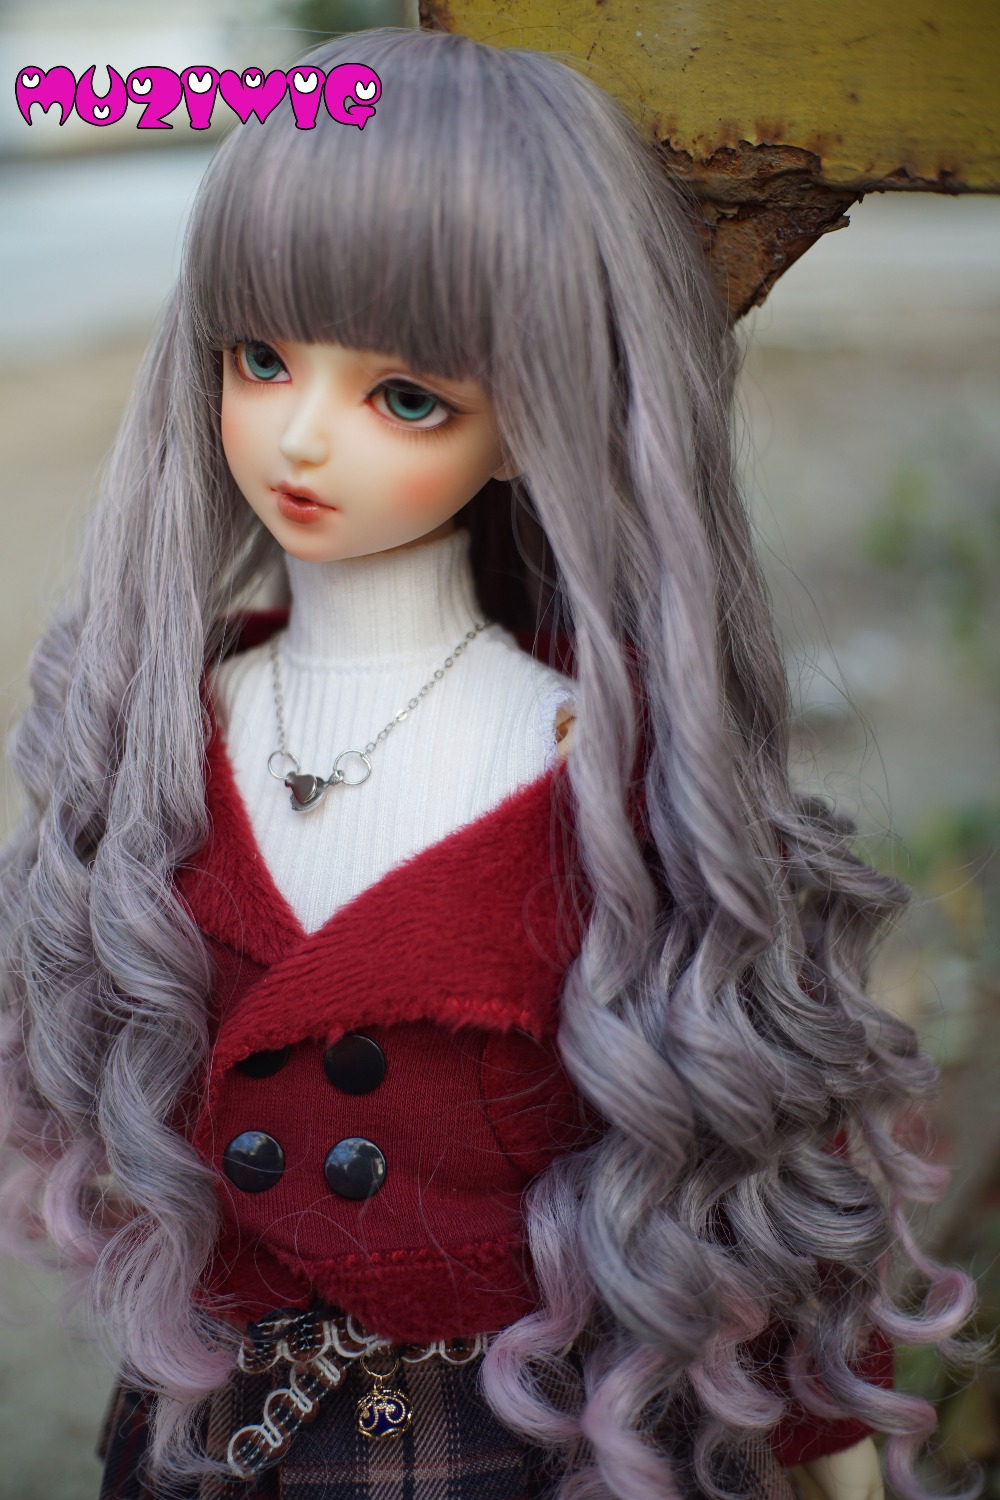 High-temperature Fiber Synthetic Long Deep Spiral Wavy Curly Hair Wig 2 Colors For 1/3 1/4 1/6 BJD On Sale In MUZIWIG